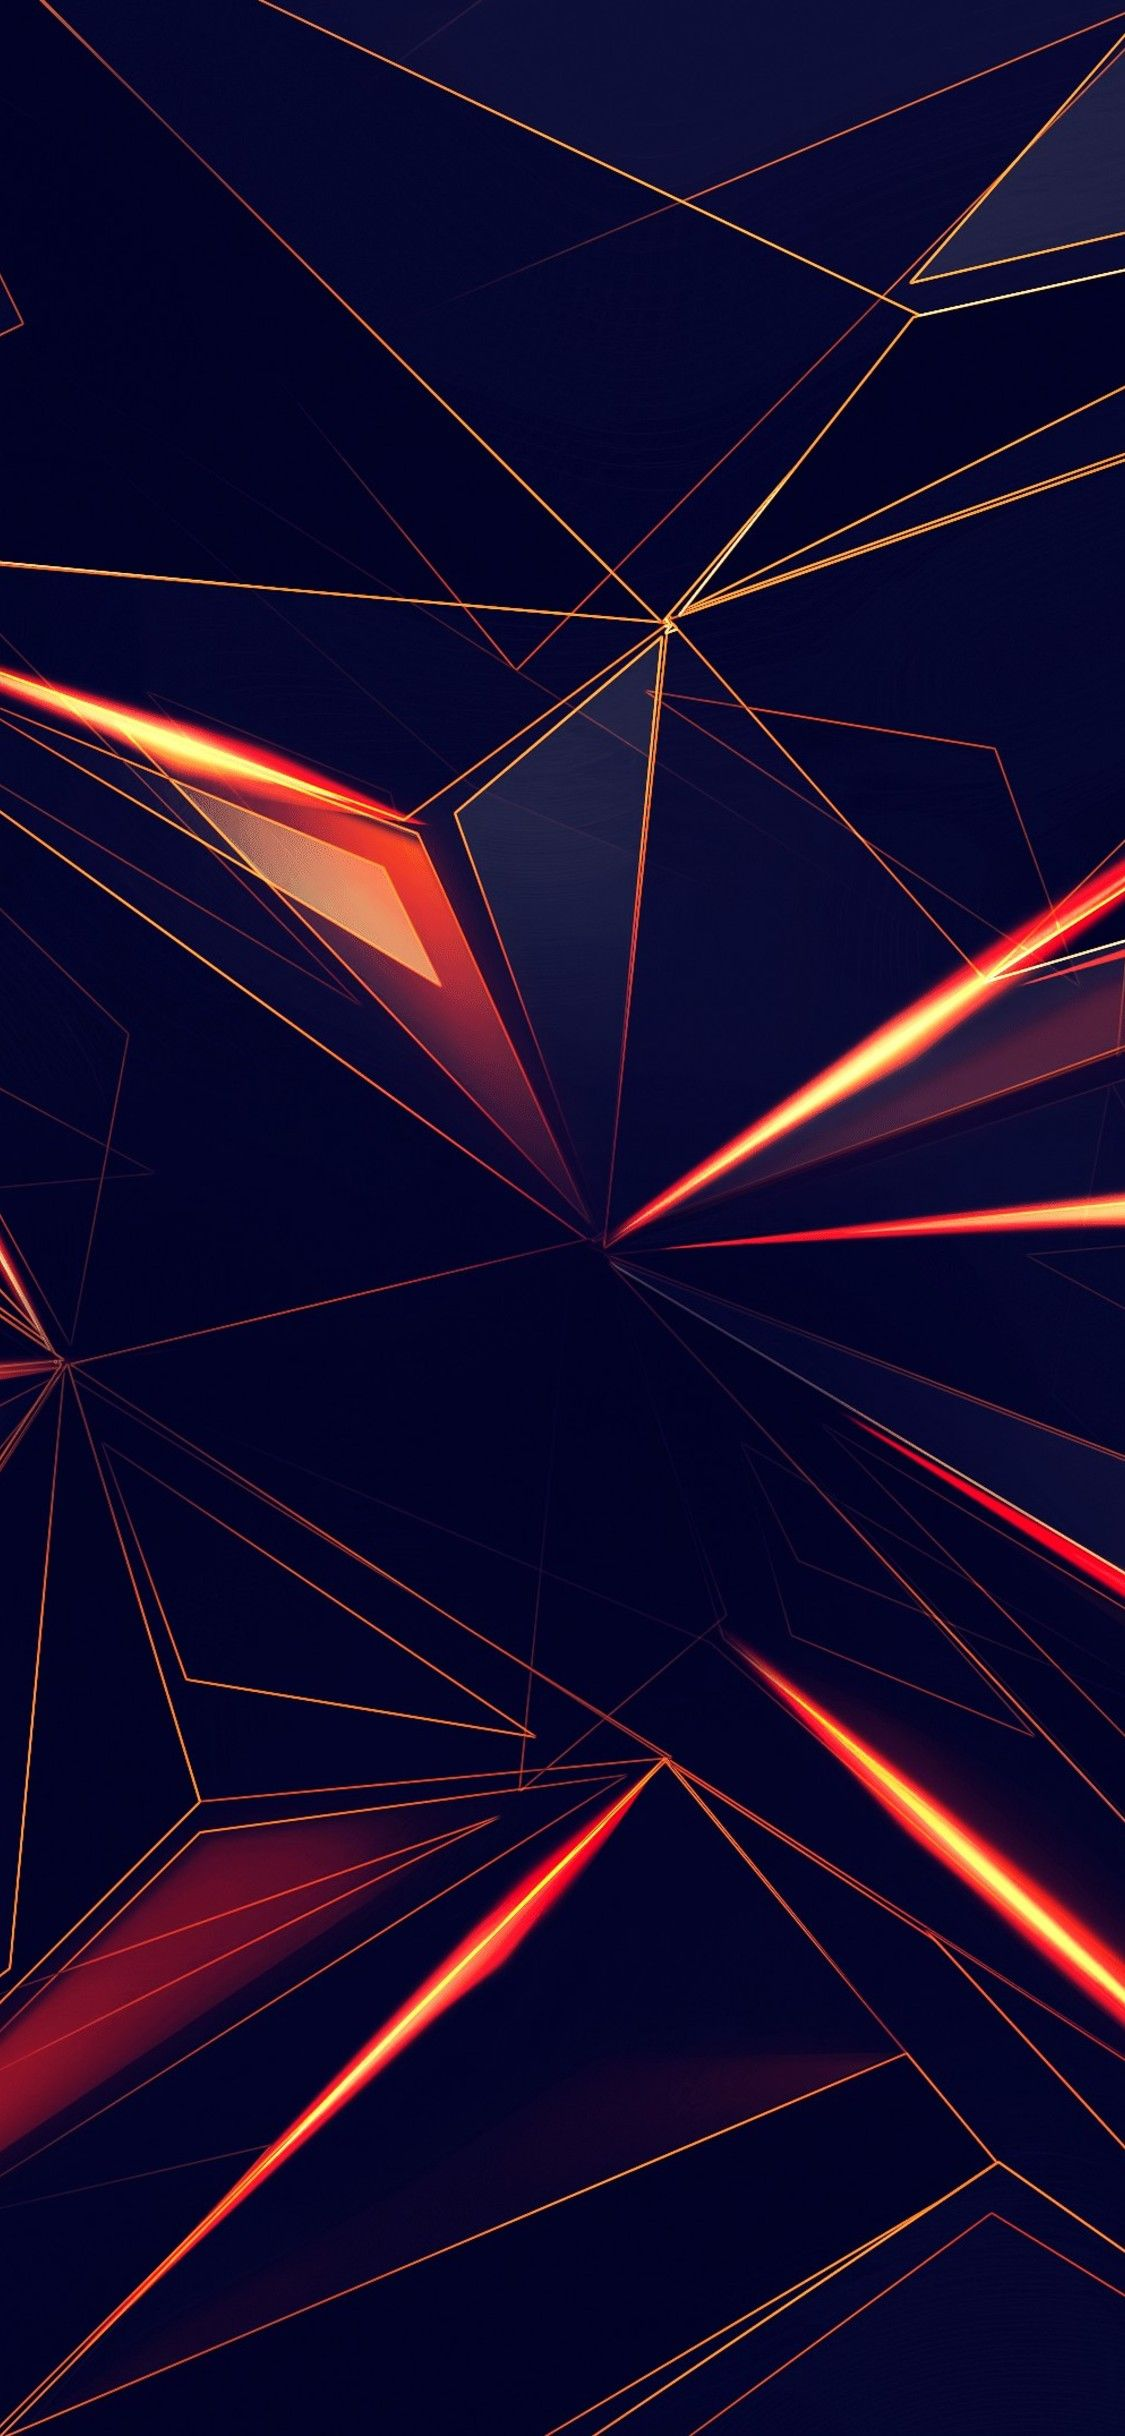 3d Shapes Abstract Lines 4k In 1125x2436 Resolution wall